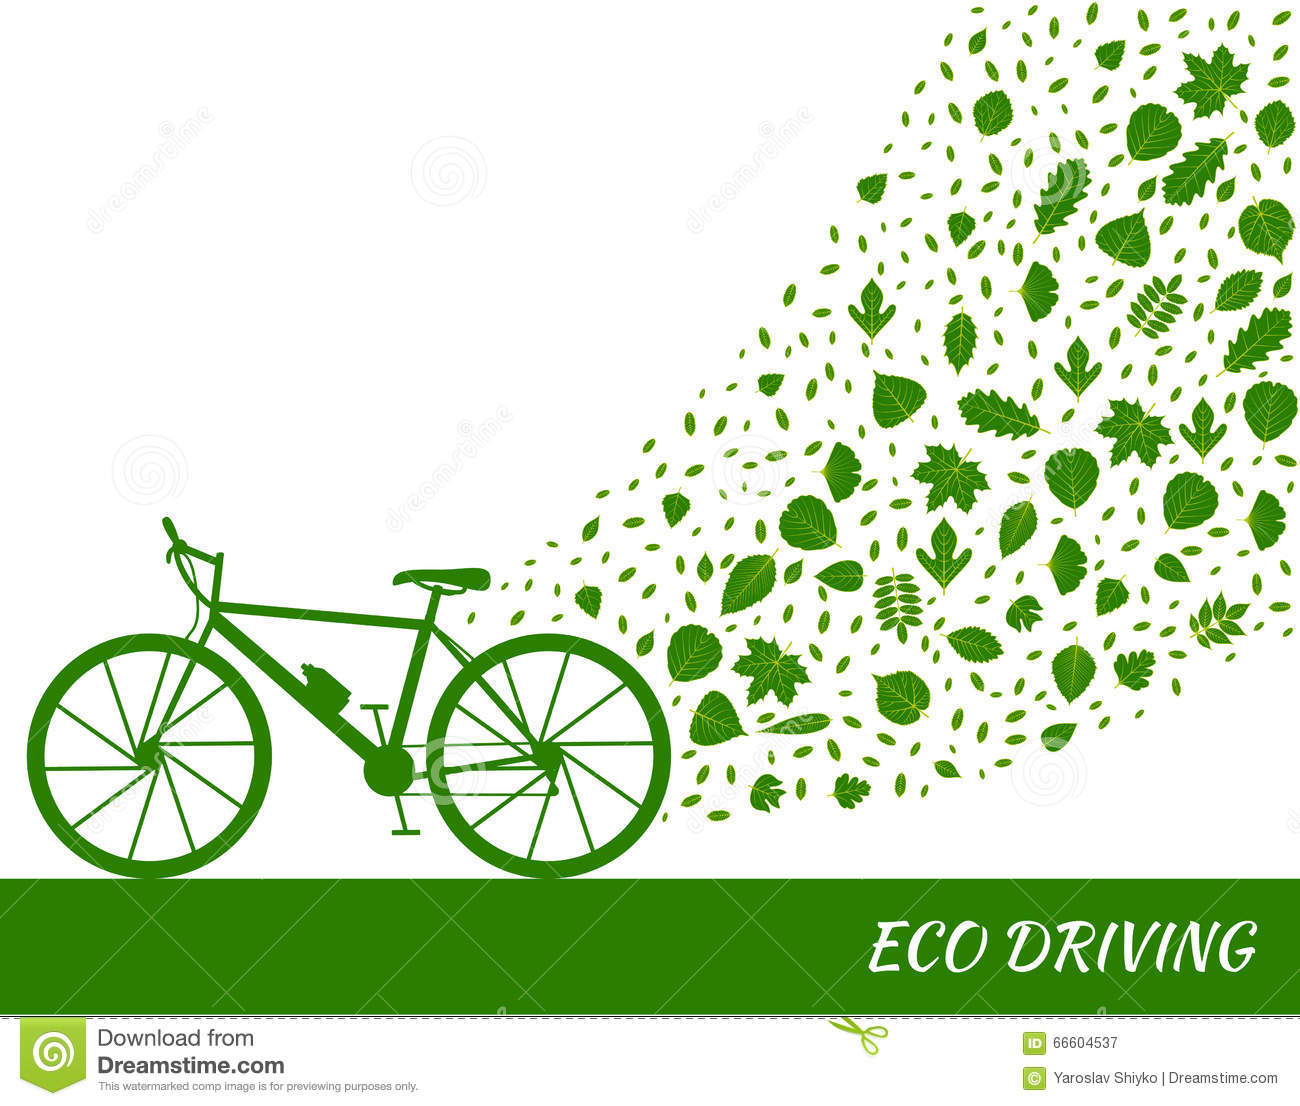 Eco Driving Concept In Green Colors. Bike And Trail Of Tree Leaves.